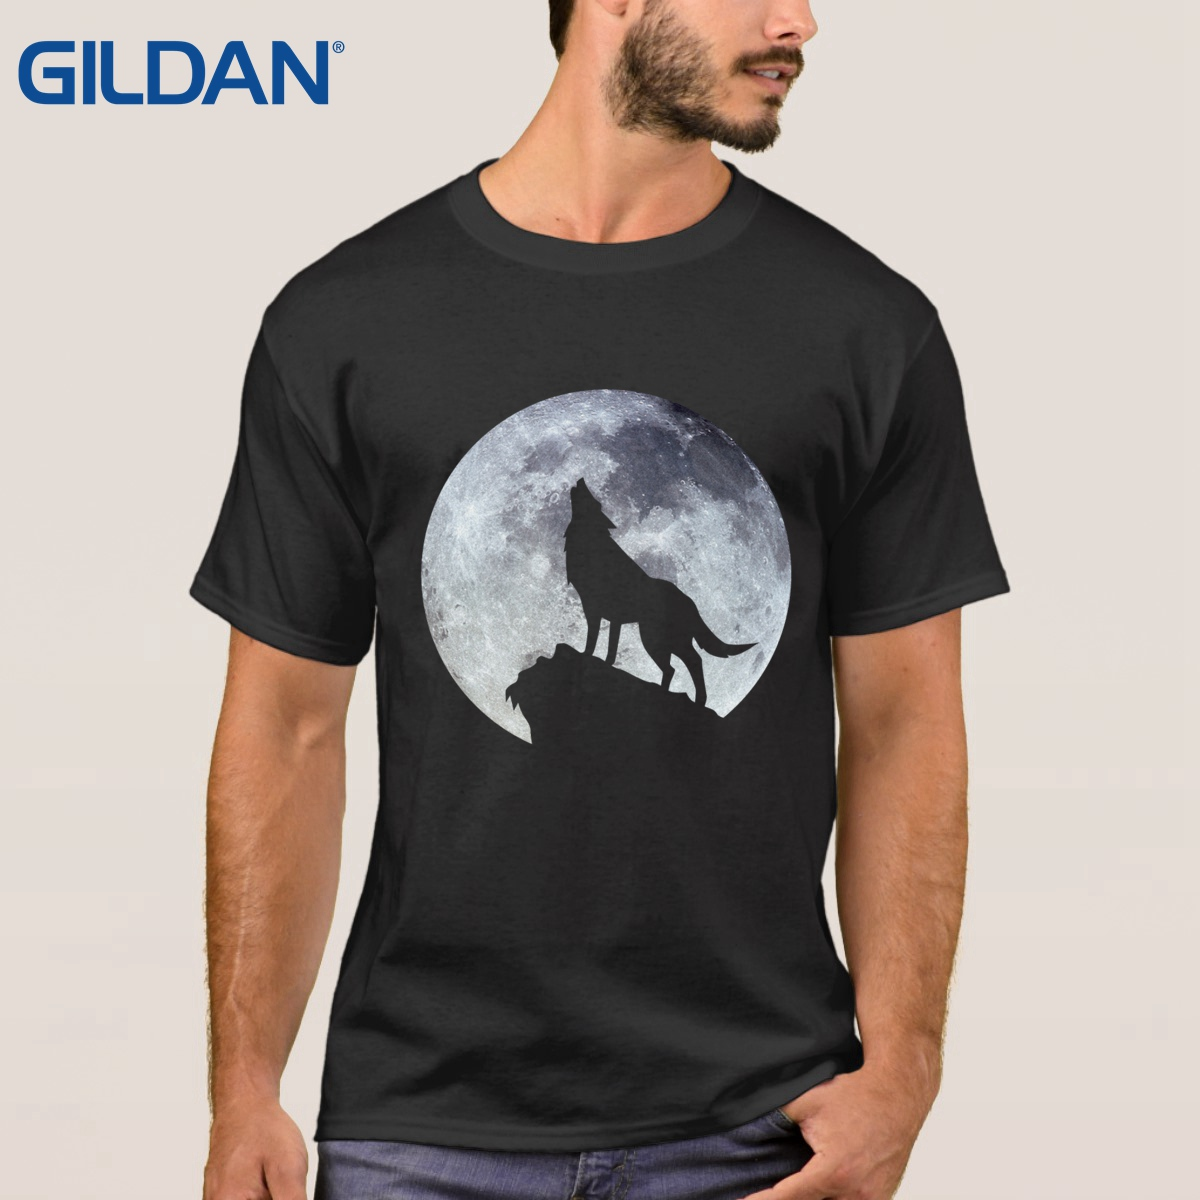 Design your own t shirt mens - Black Friday Tee Shirt 100 Cotton Wolf Sif Dark Souls Grey T Shirt Mens Homme Size S To 4xl Printing Cloth Design Your Own Tee Shirt